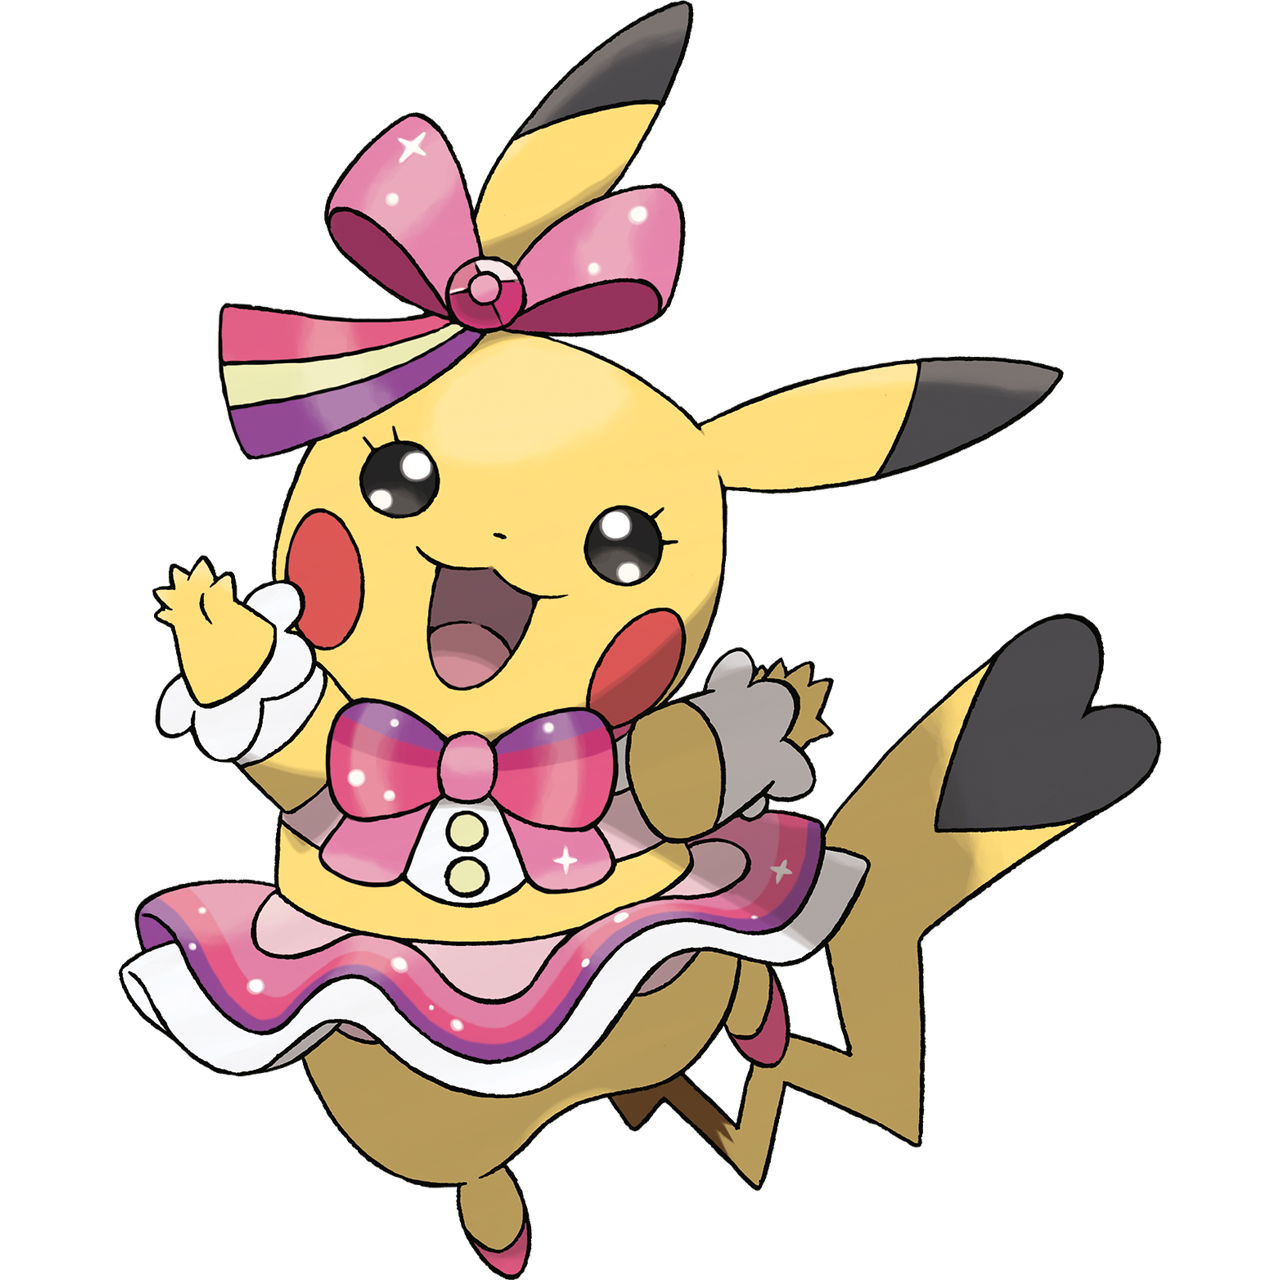 025Pikachu-Pop Star